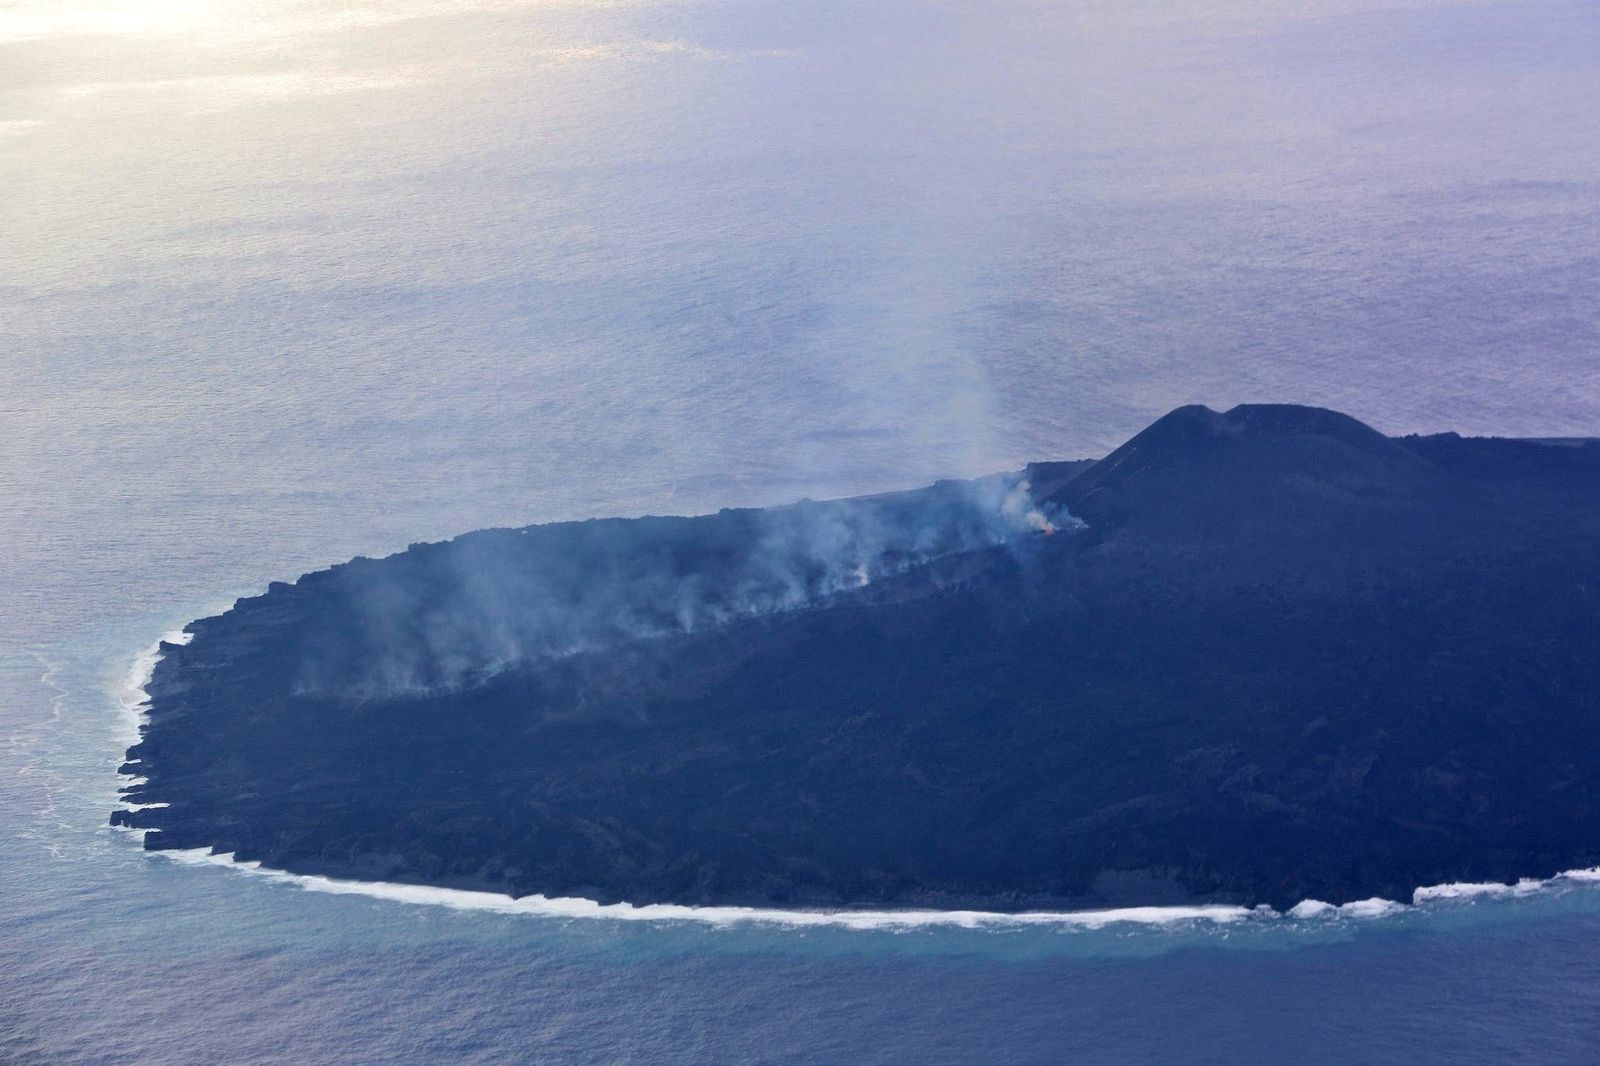 Nishinoshima - 06.12.2019 - spaterring à la base du cône et fumerolles sur les coulées de lave - photo Japan Coast Guards